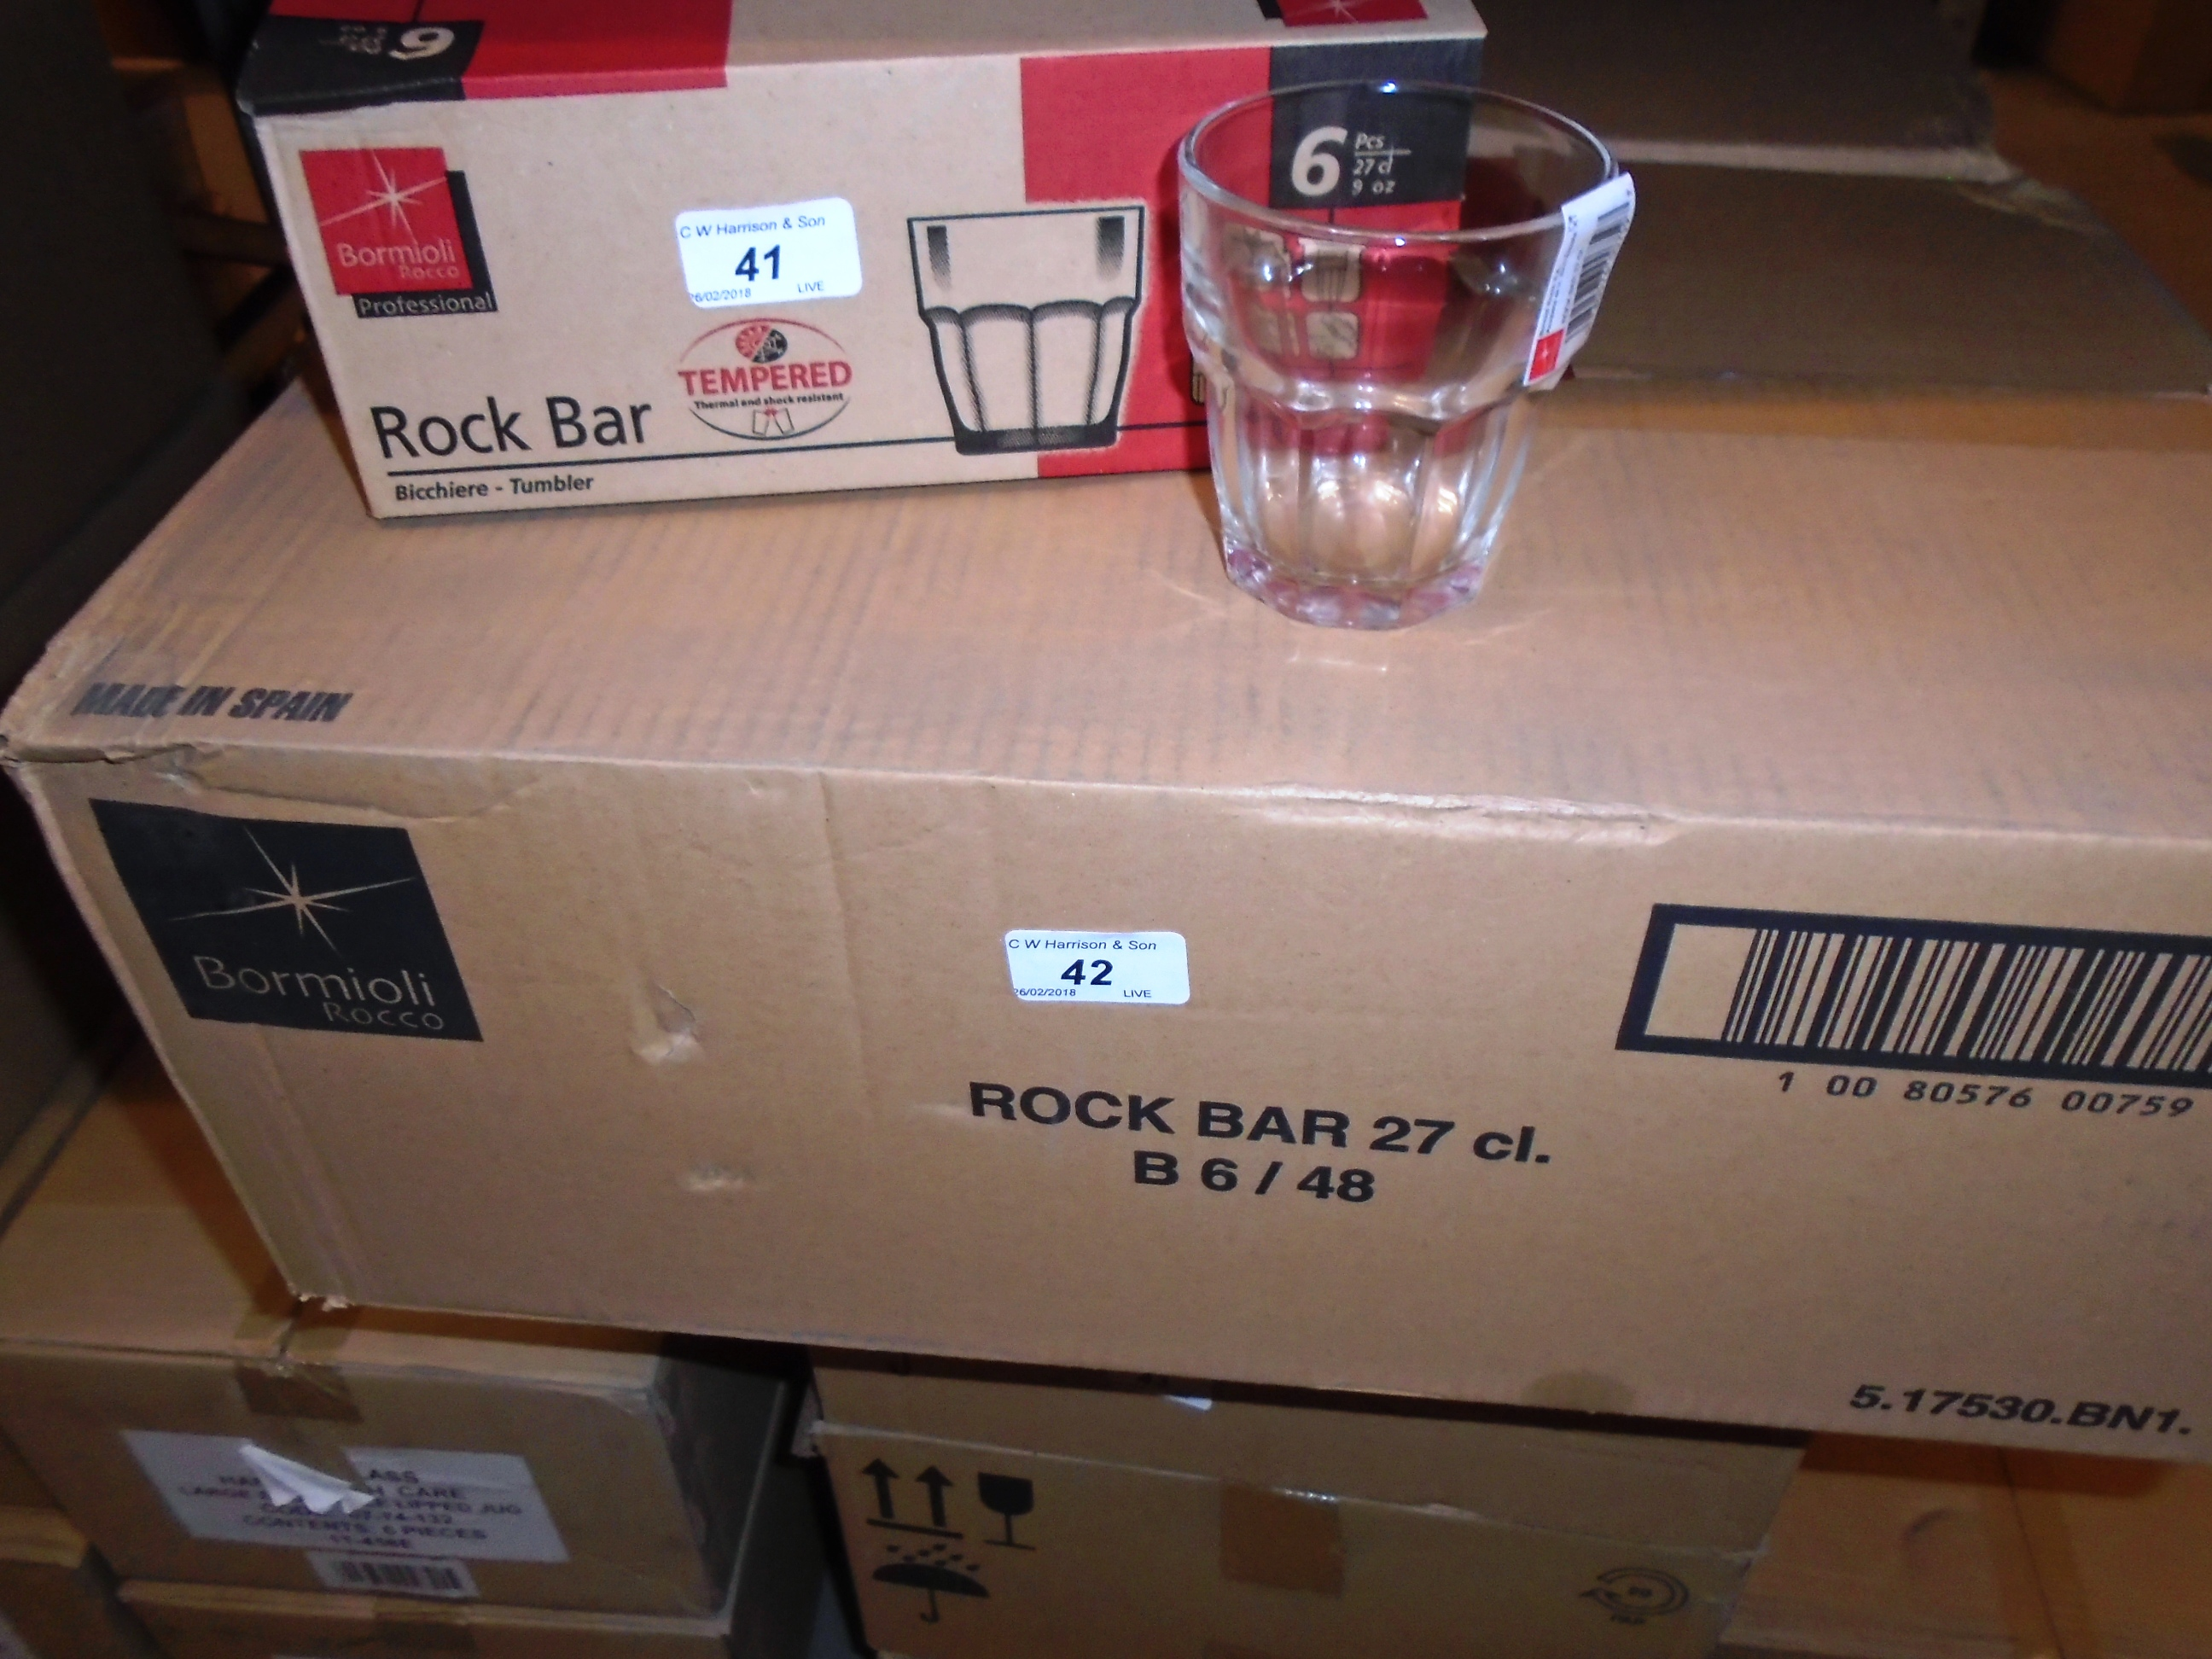 Lot 42 - 96 x Bormioli rock bar glasses - 2 x outer box